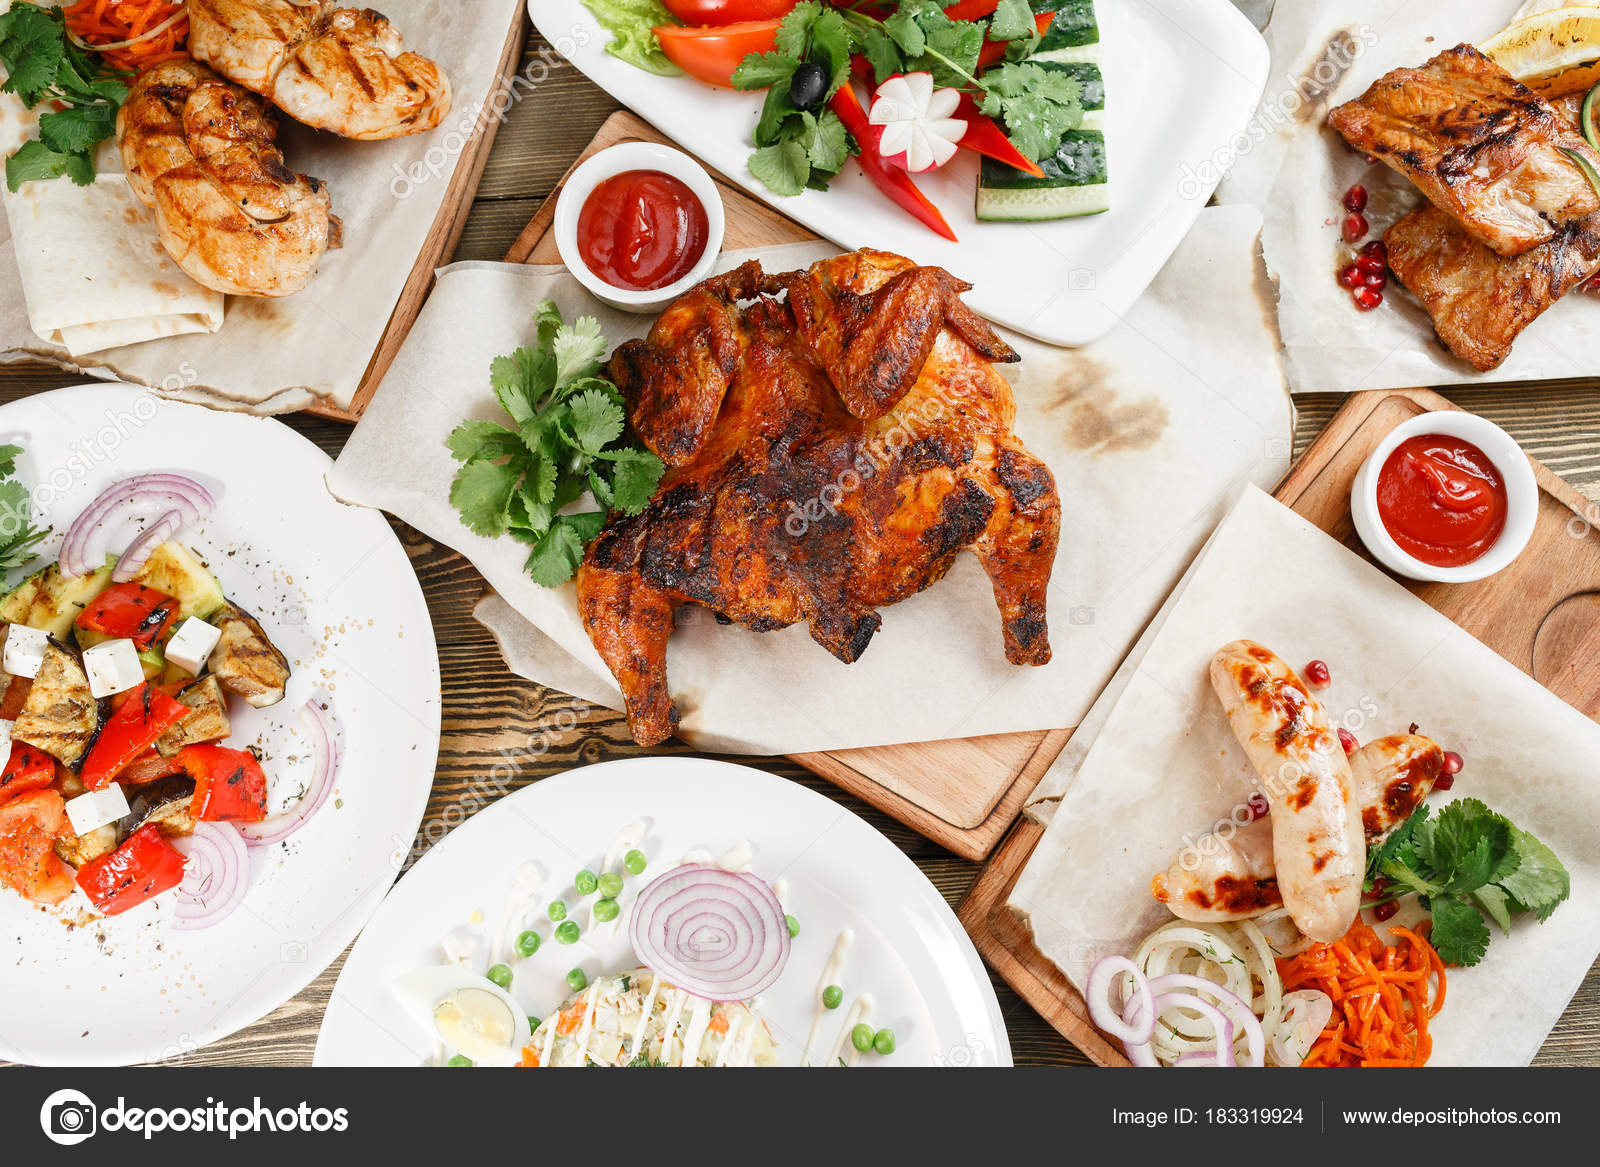 Serving On A Wooden Board Rustic Table Barbecue Restaurant Menu Series Of Photos Different Meats Food To Beer Photo By MalkovKosta